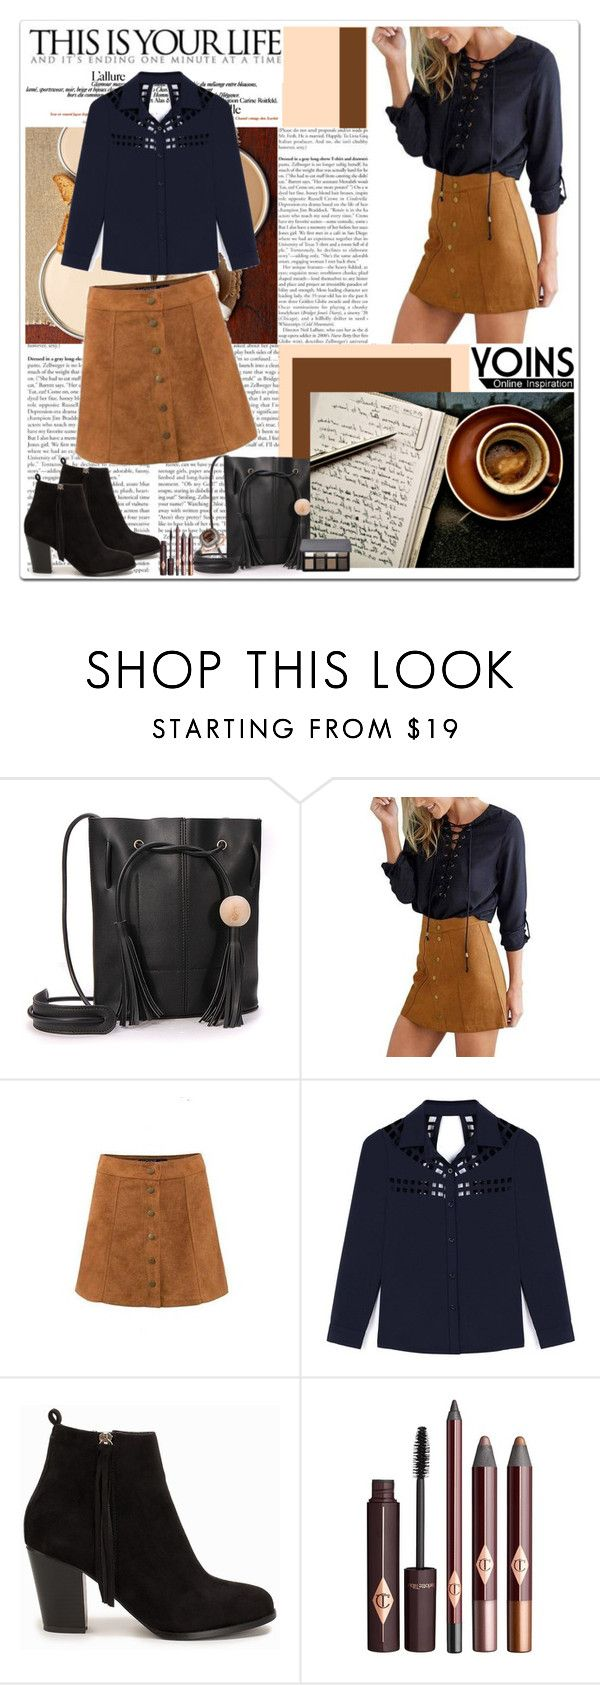 """On to the Next"" by polybaby ❤ liked on Polyvore featuring Nly Shoes, Bobbi Brown Cosmetics and Lord & Taylor"